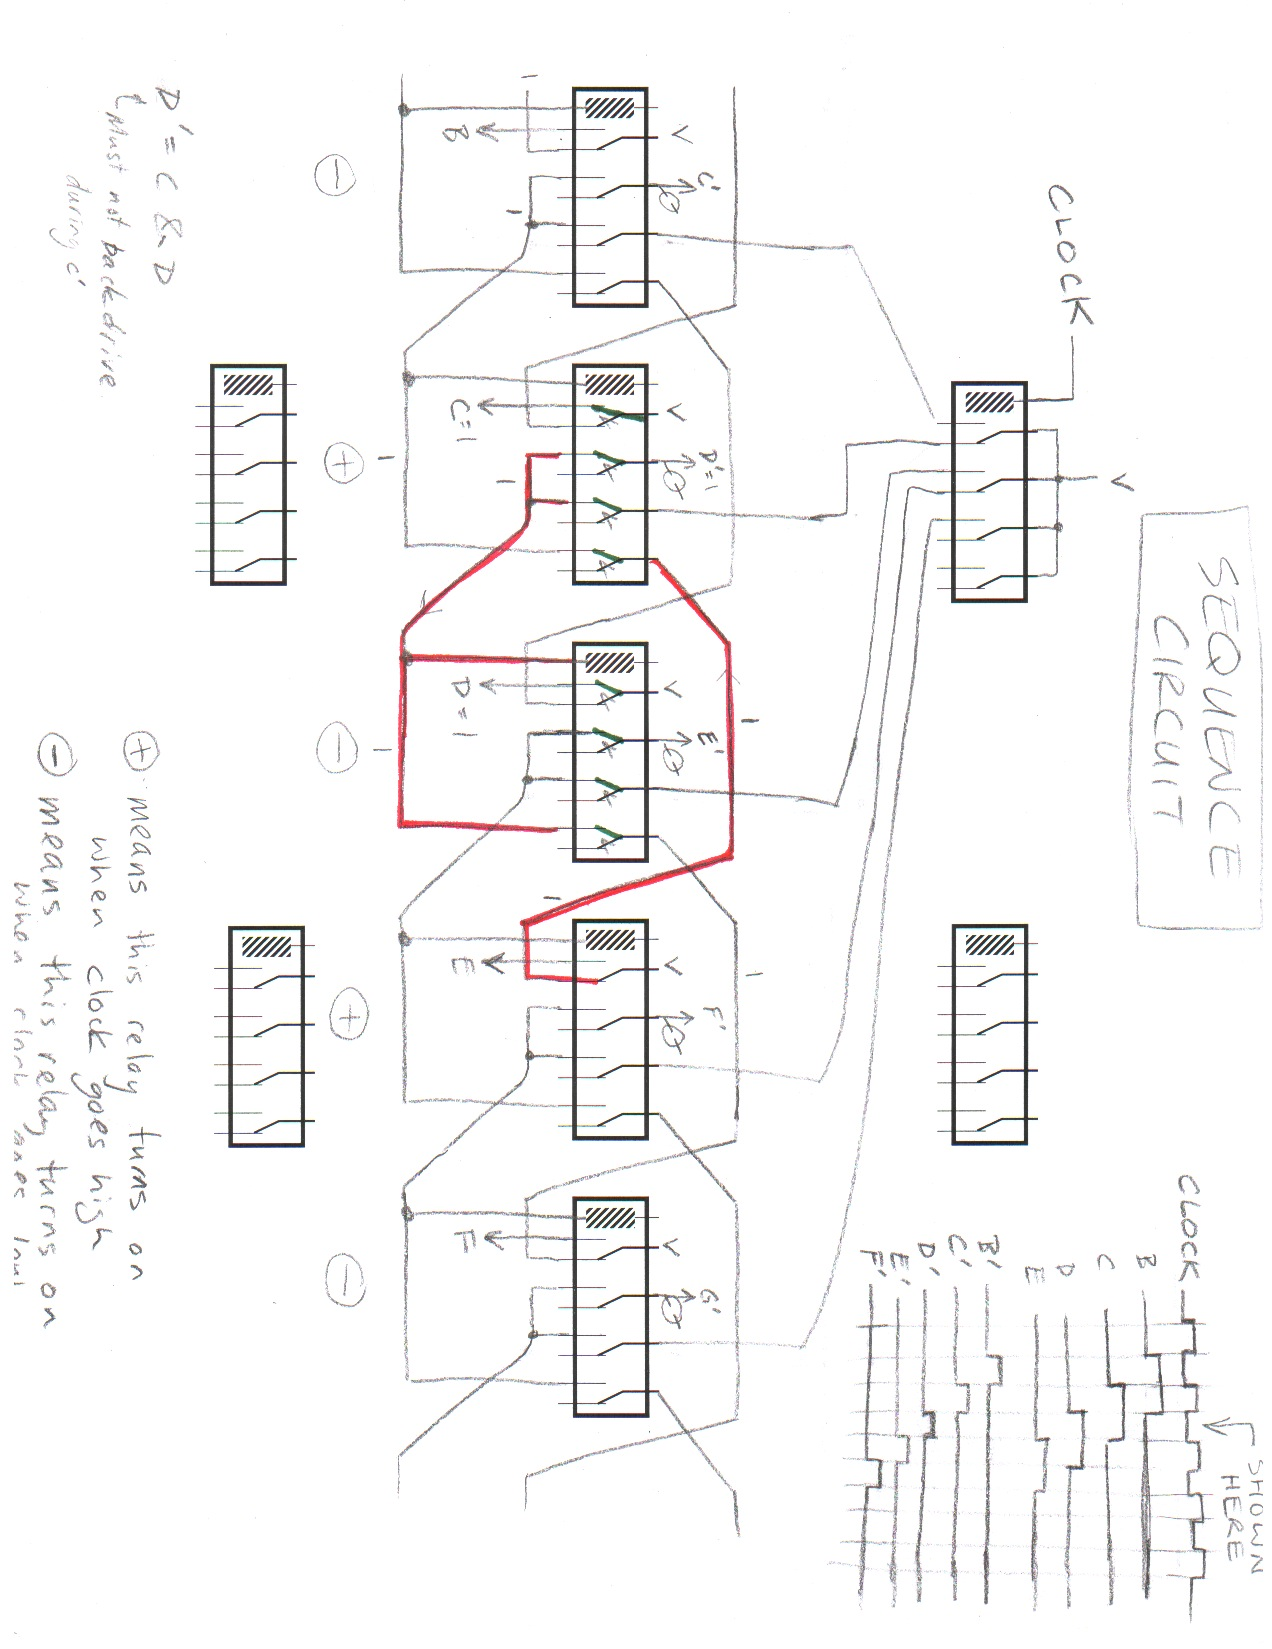 Circuit Diagrams Drawing Schematic Sequencecircuit 1